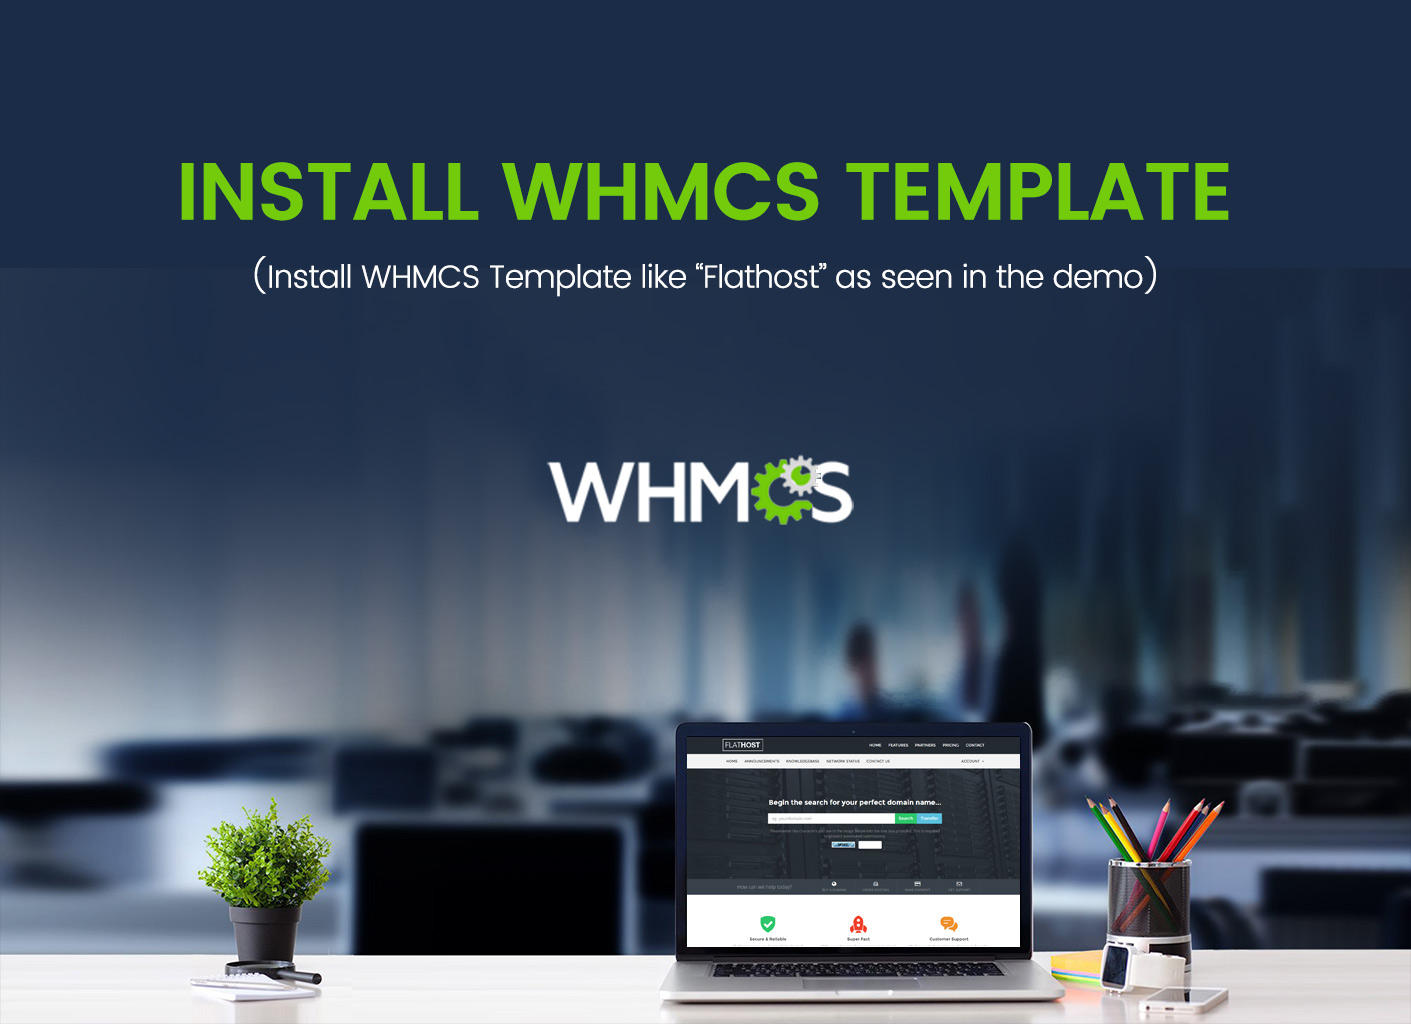 Install WHMCS Template as seen in the Demo by surjithctly - 101486